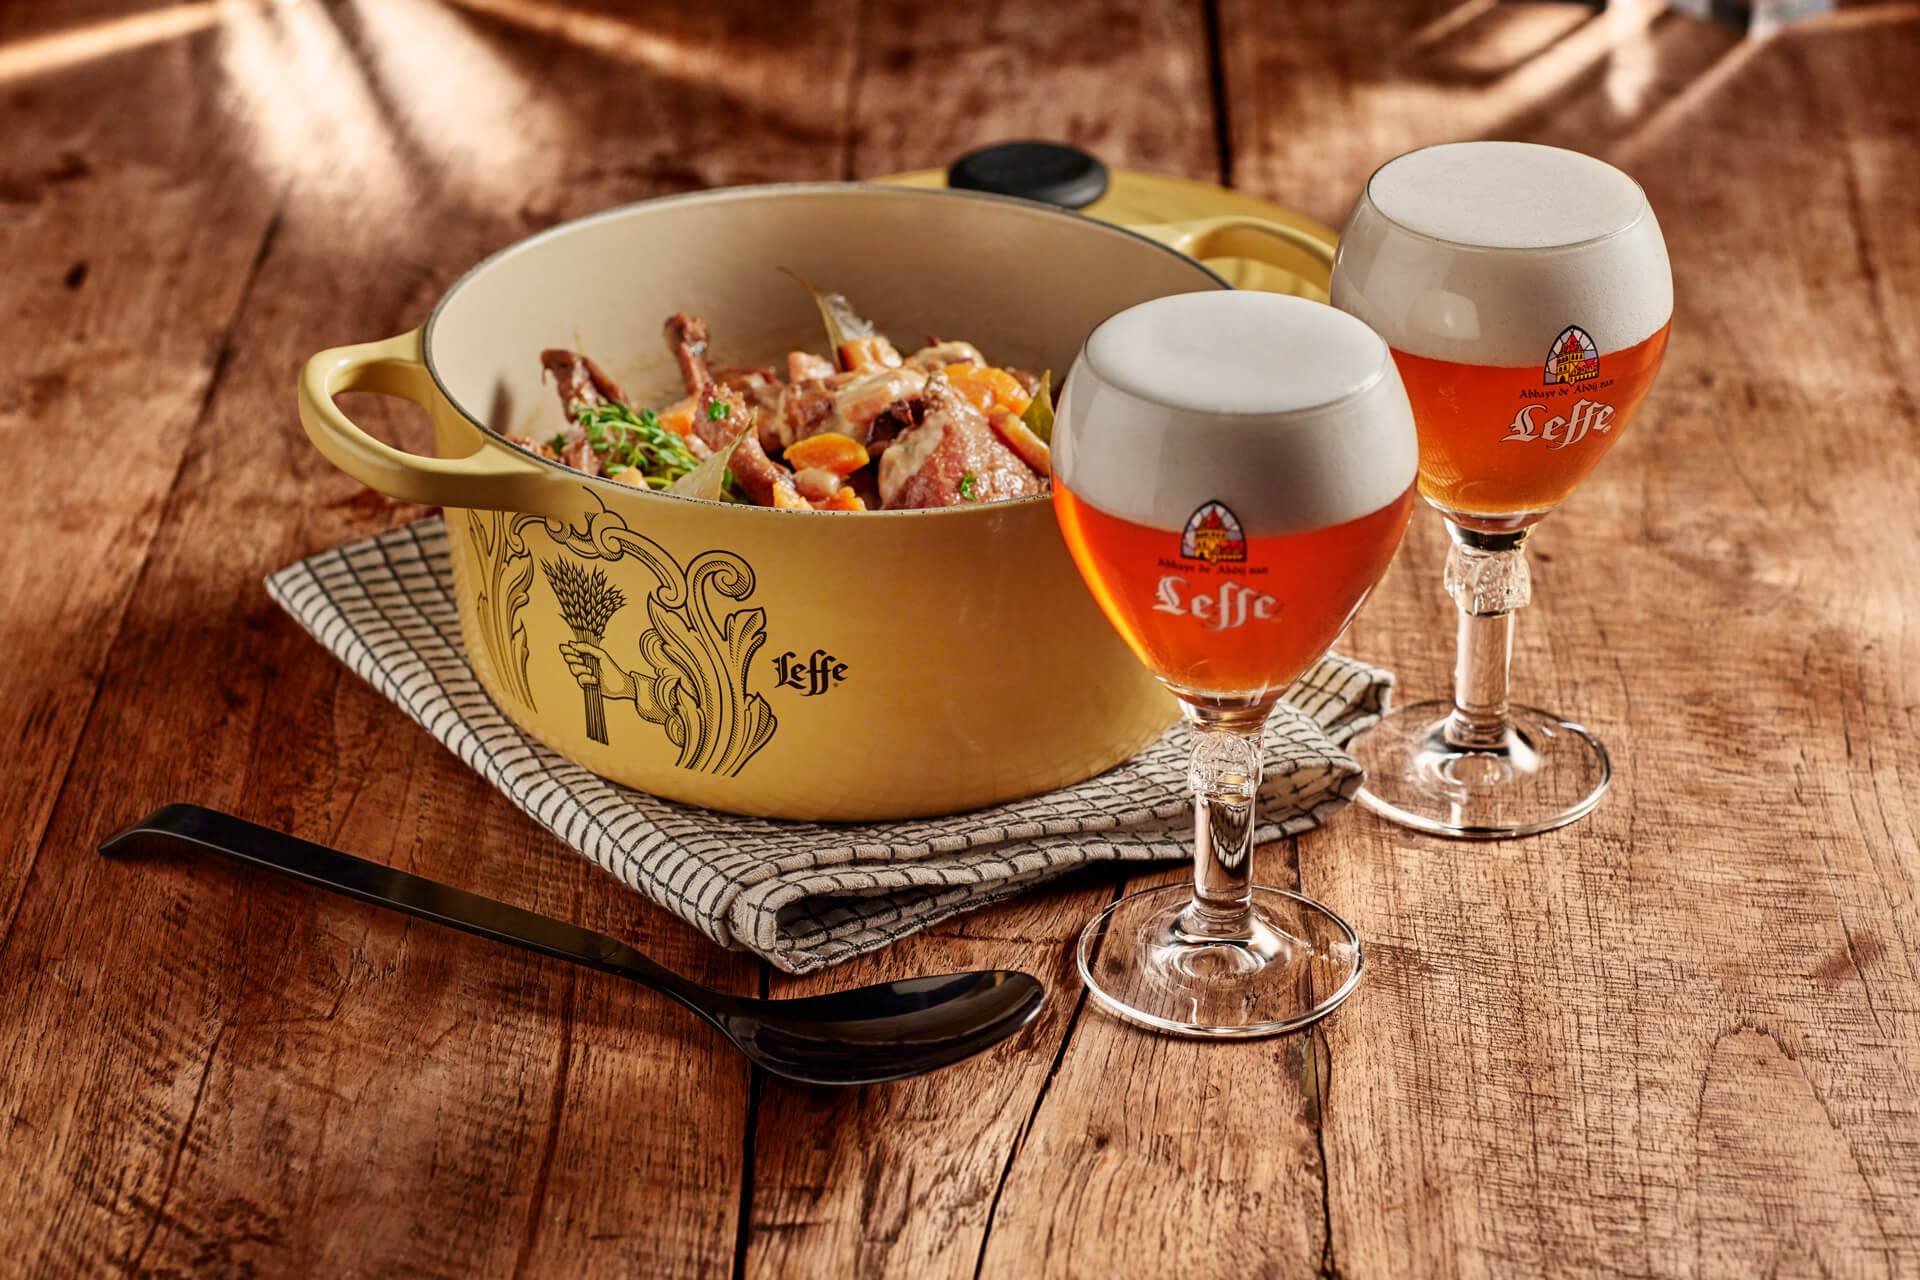 Leffe - food photography by Erik de Koning - pot with 2 glasses of beer